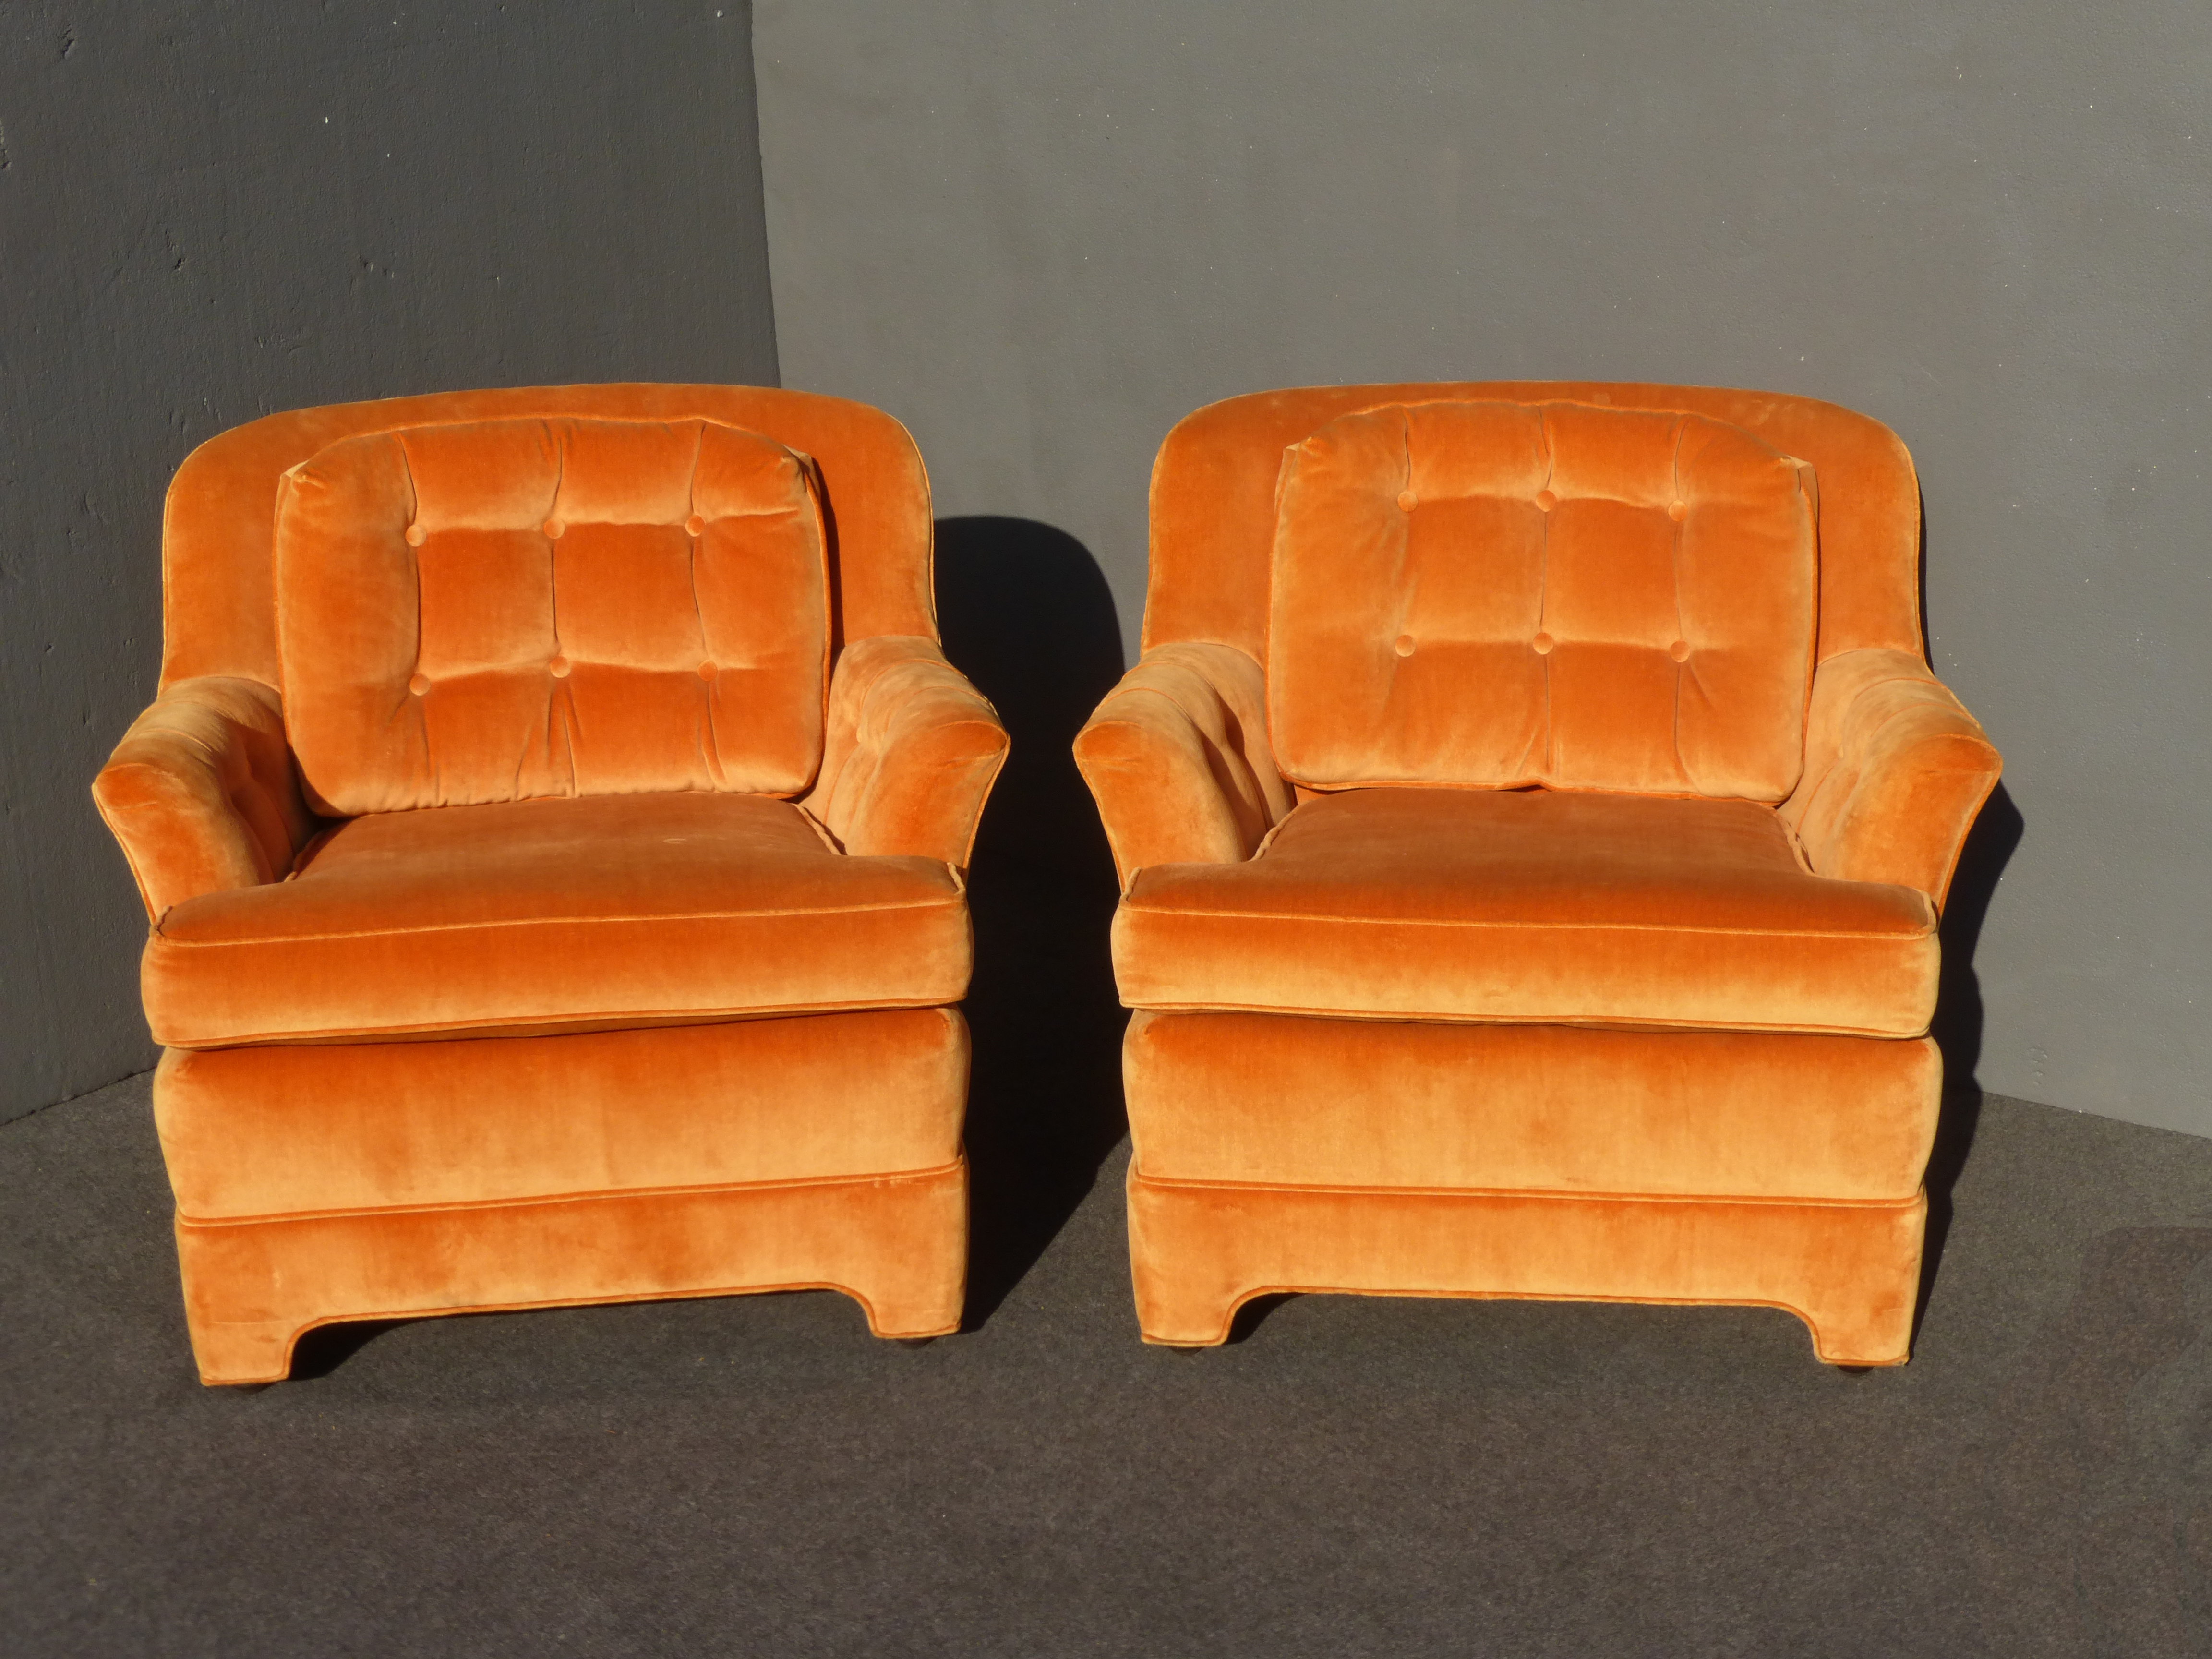 Mid Century Tufted Orange Velvet Accent Chairs   A Pair By Marge Carson    Image 2